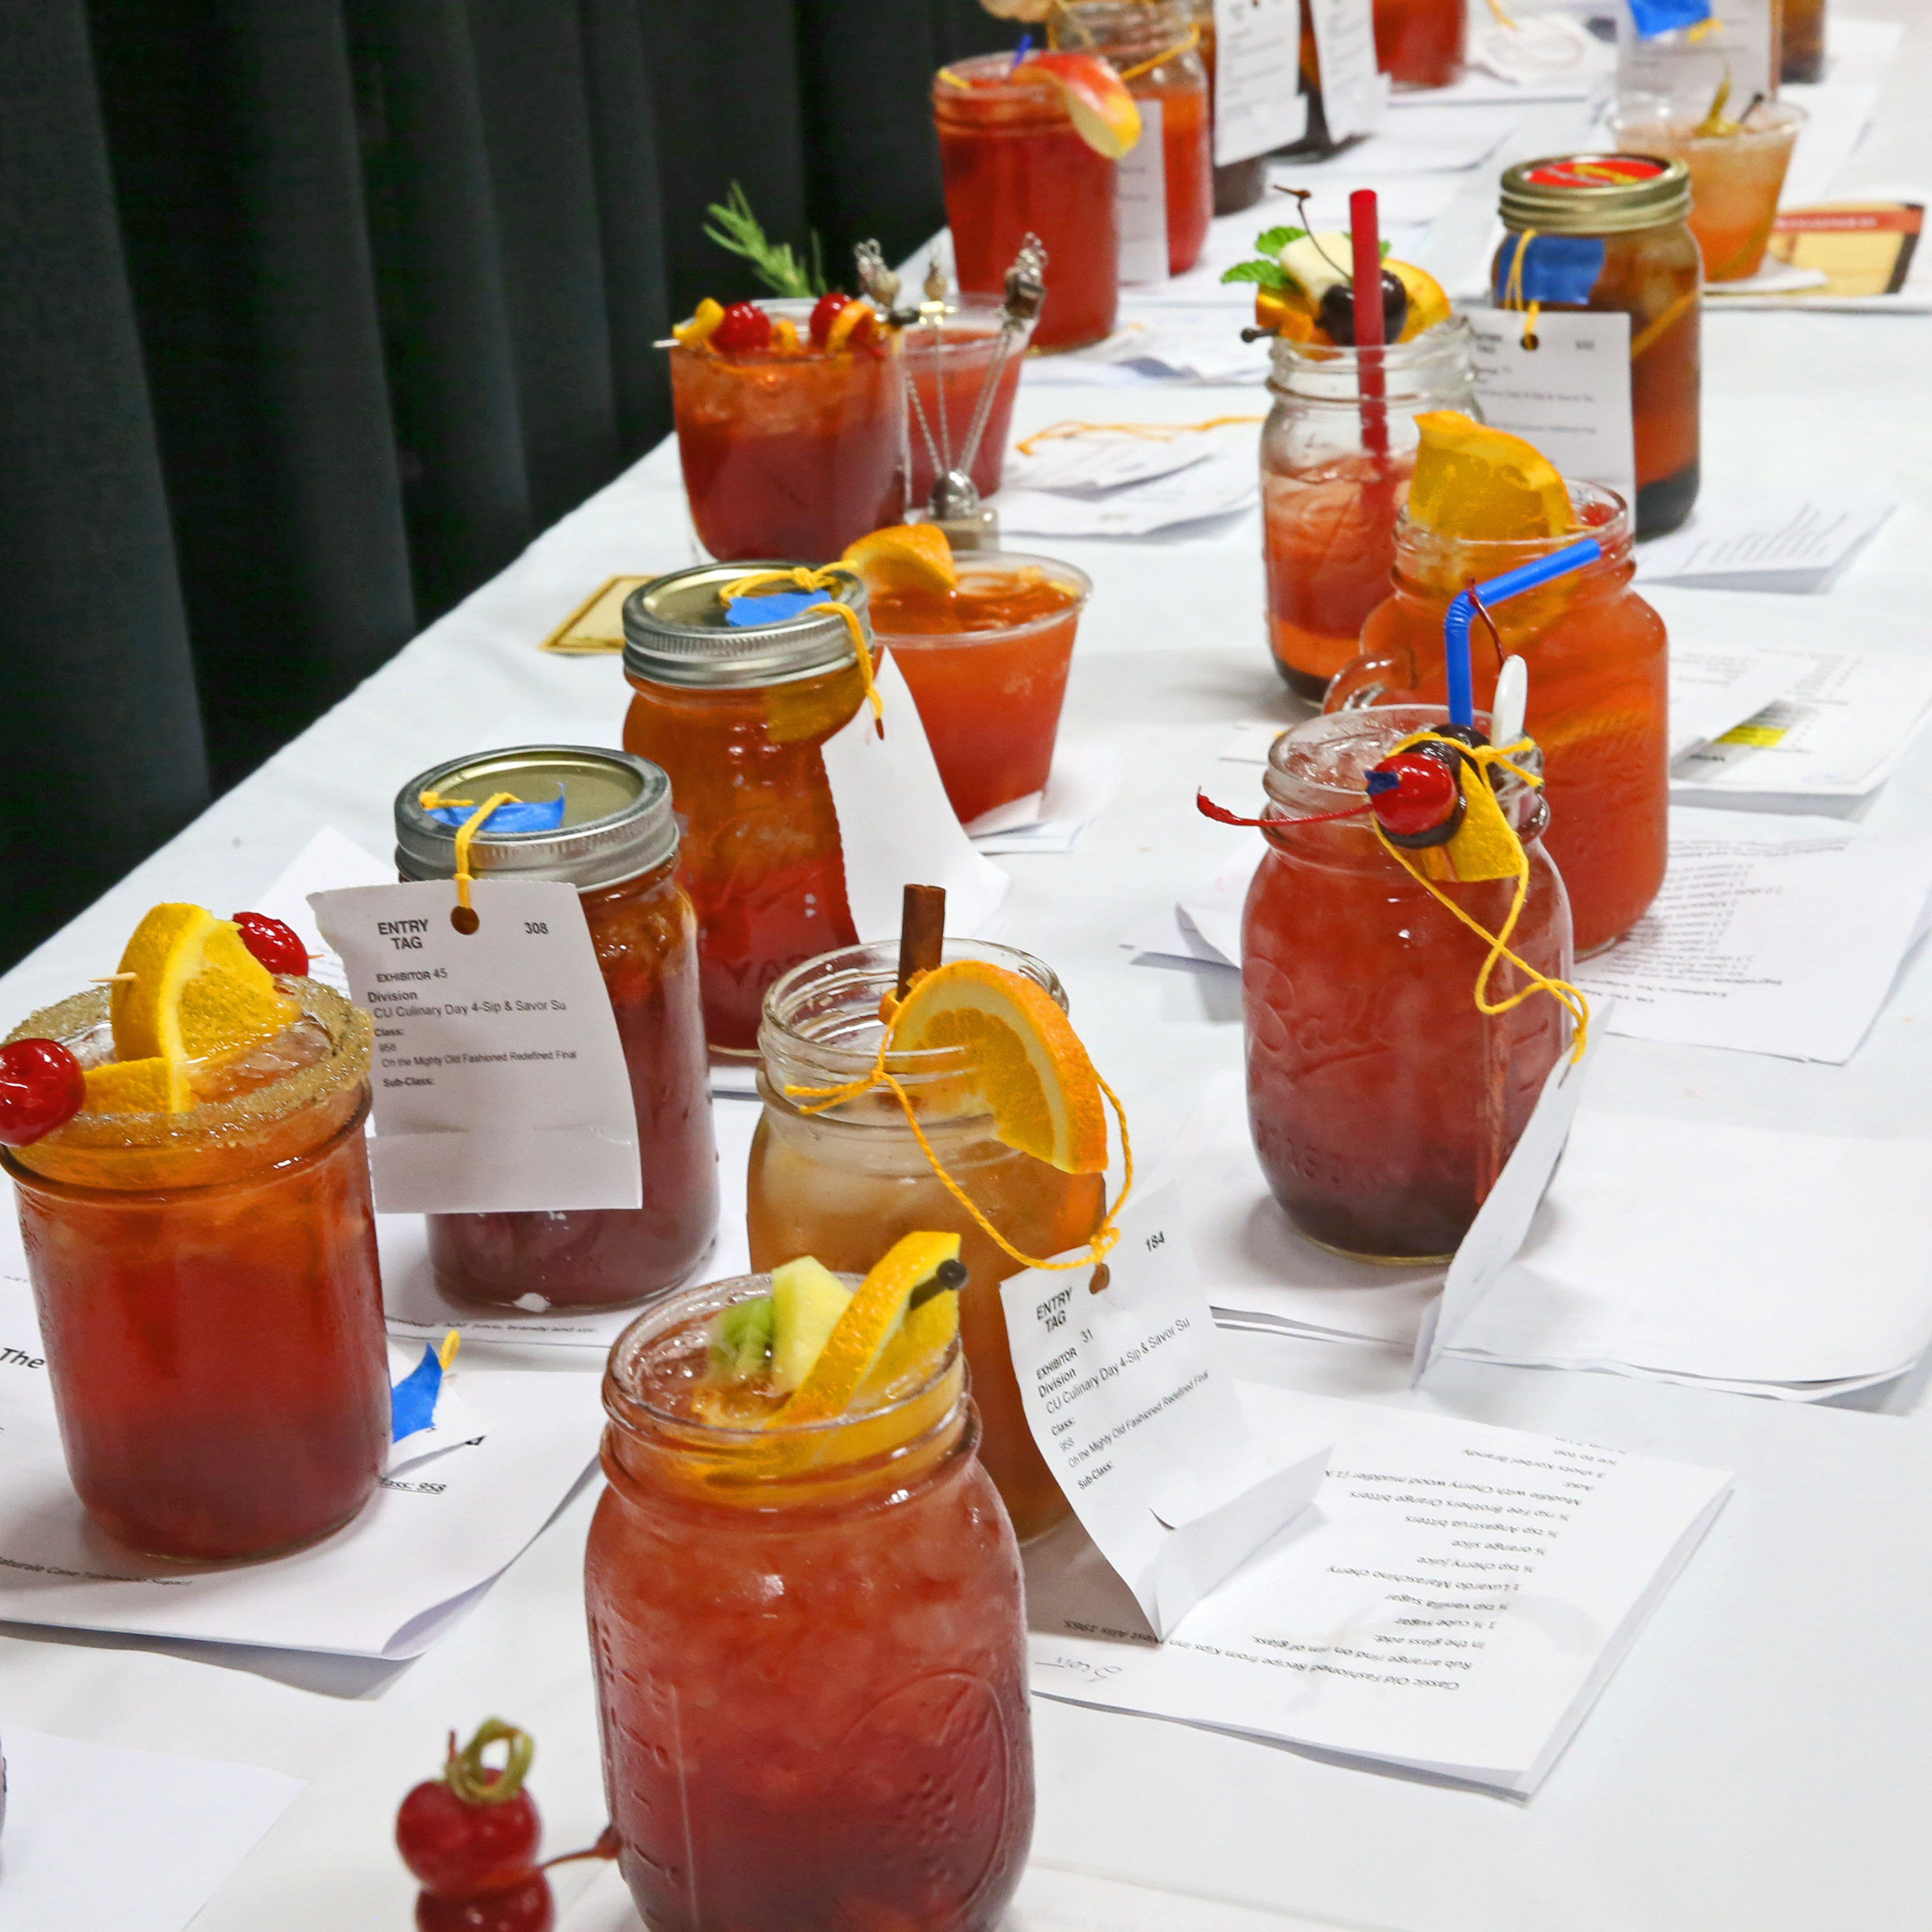 There's no cocktail category but still plenty of spirit in State Fair culinary contests